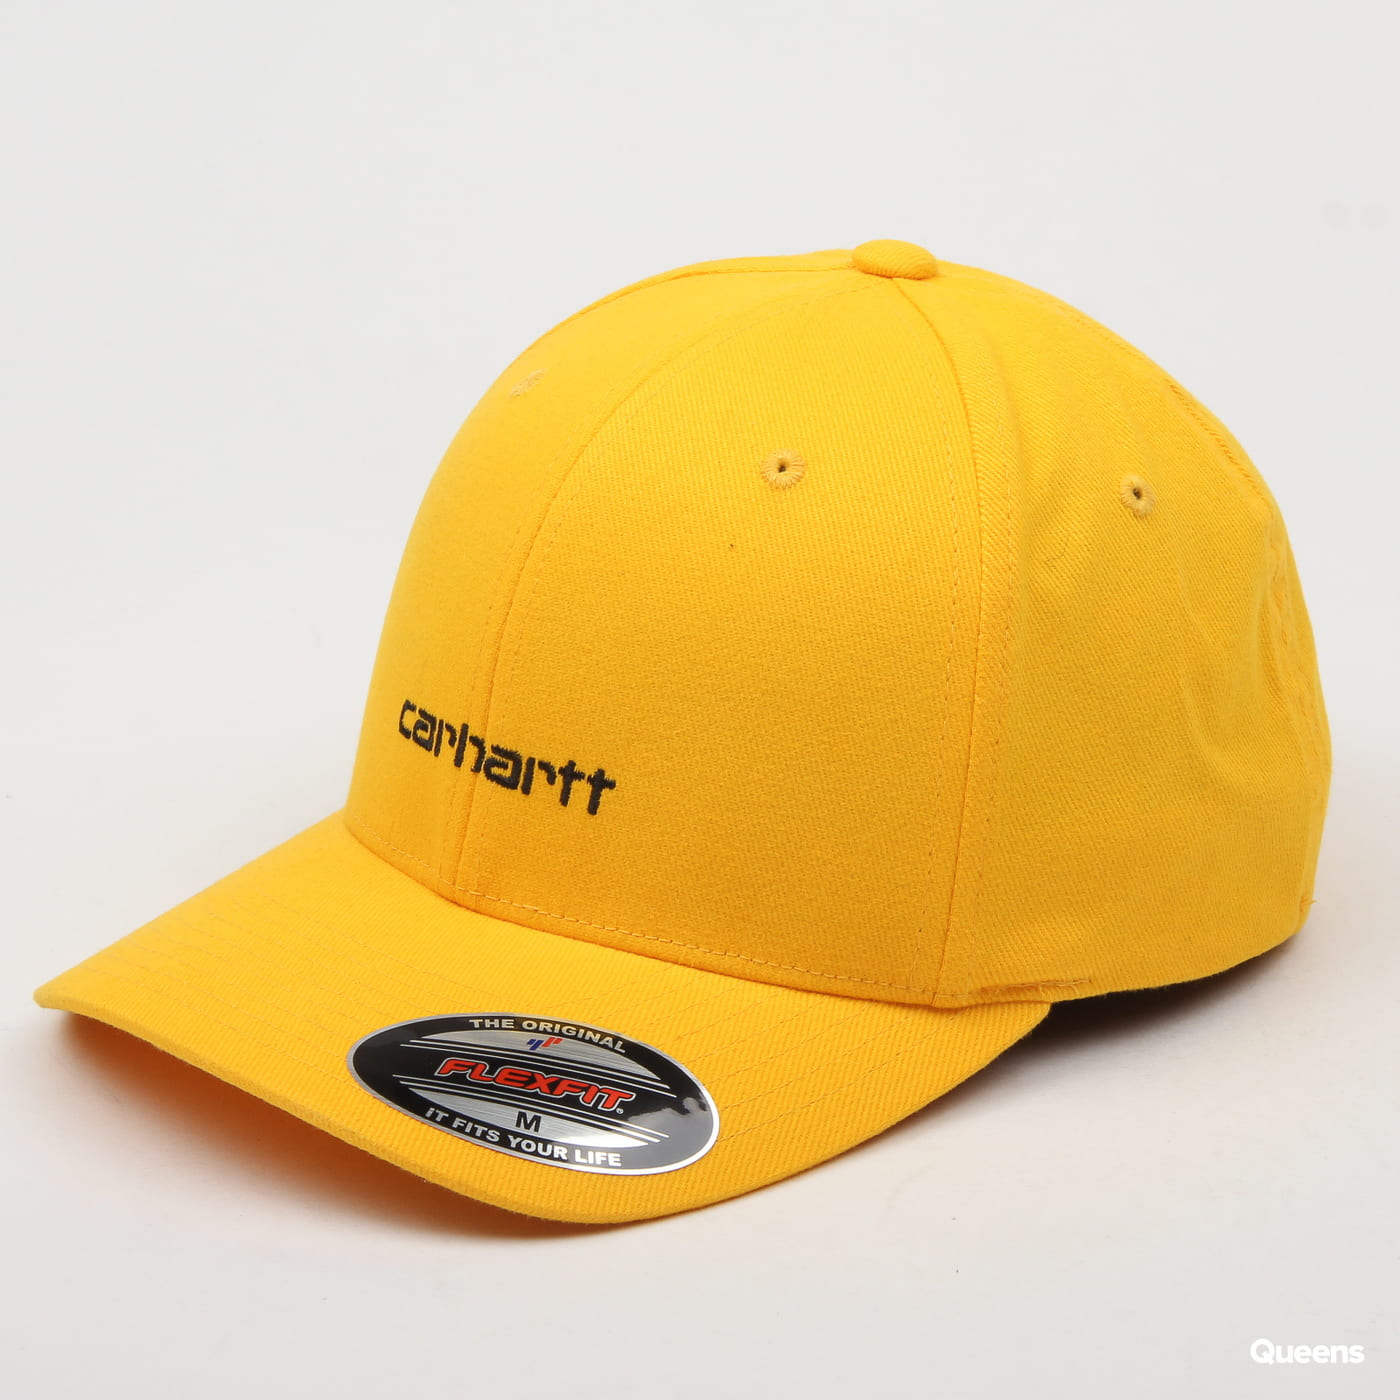 united kingdom reliable quality hot new products Hat Carhartt WIP Script Cap 6lut8 (I026309.03N.90.03) – Queens 💚